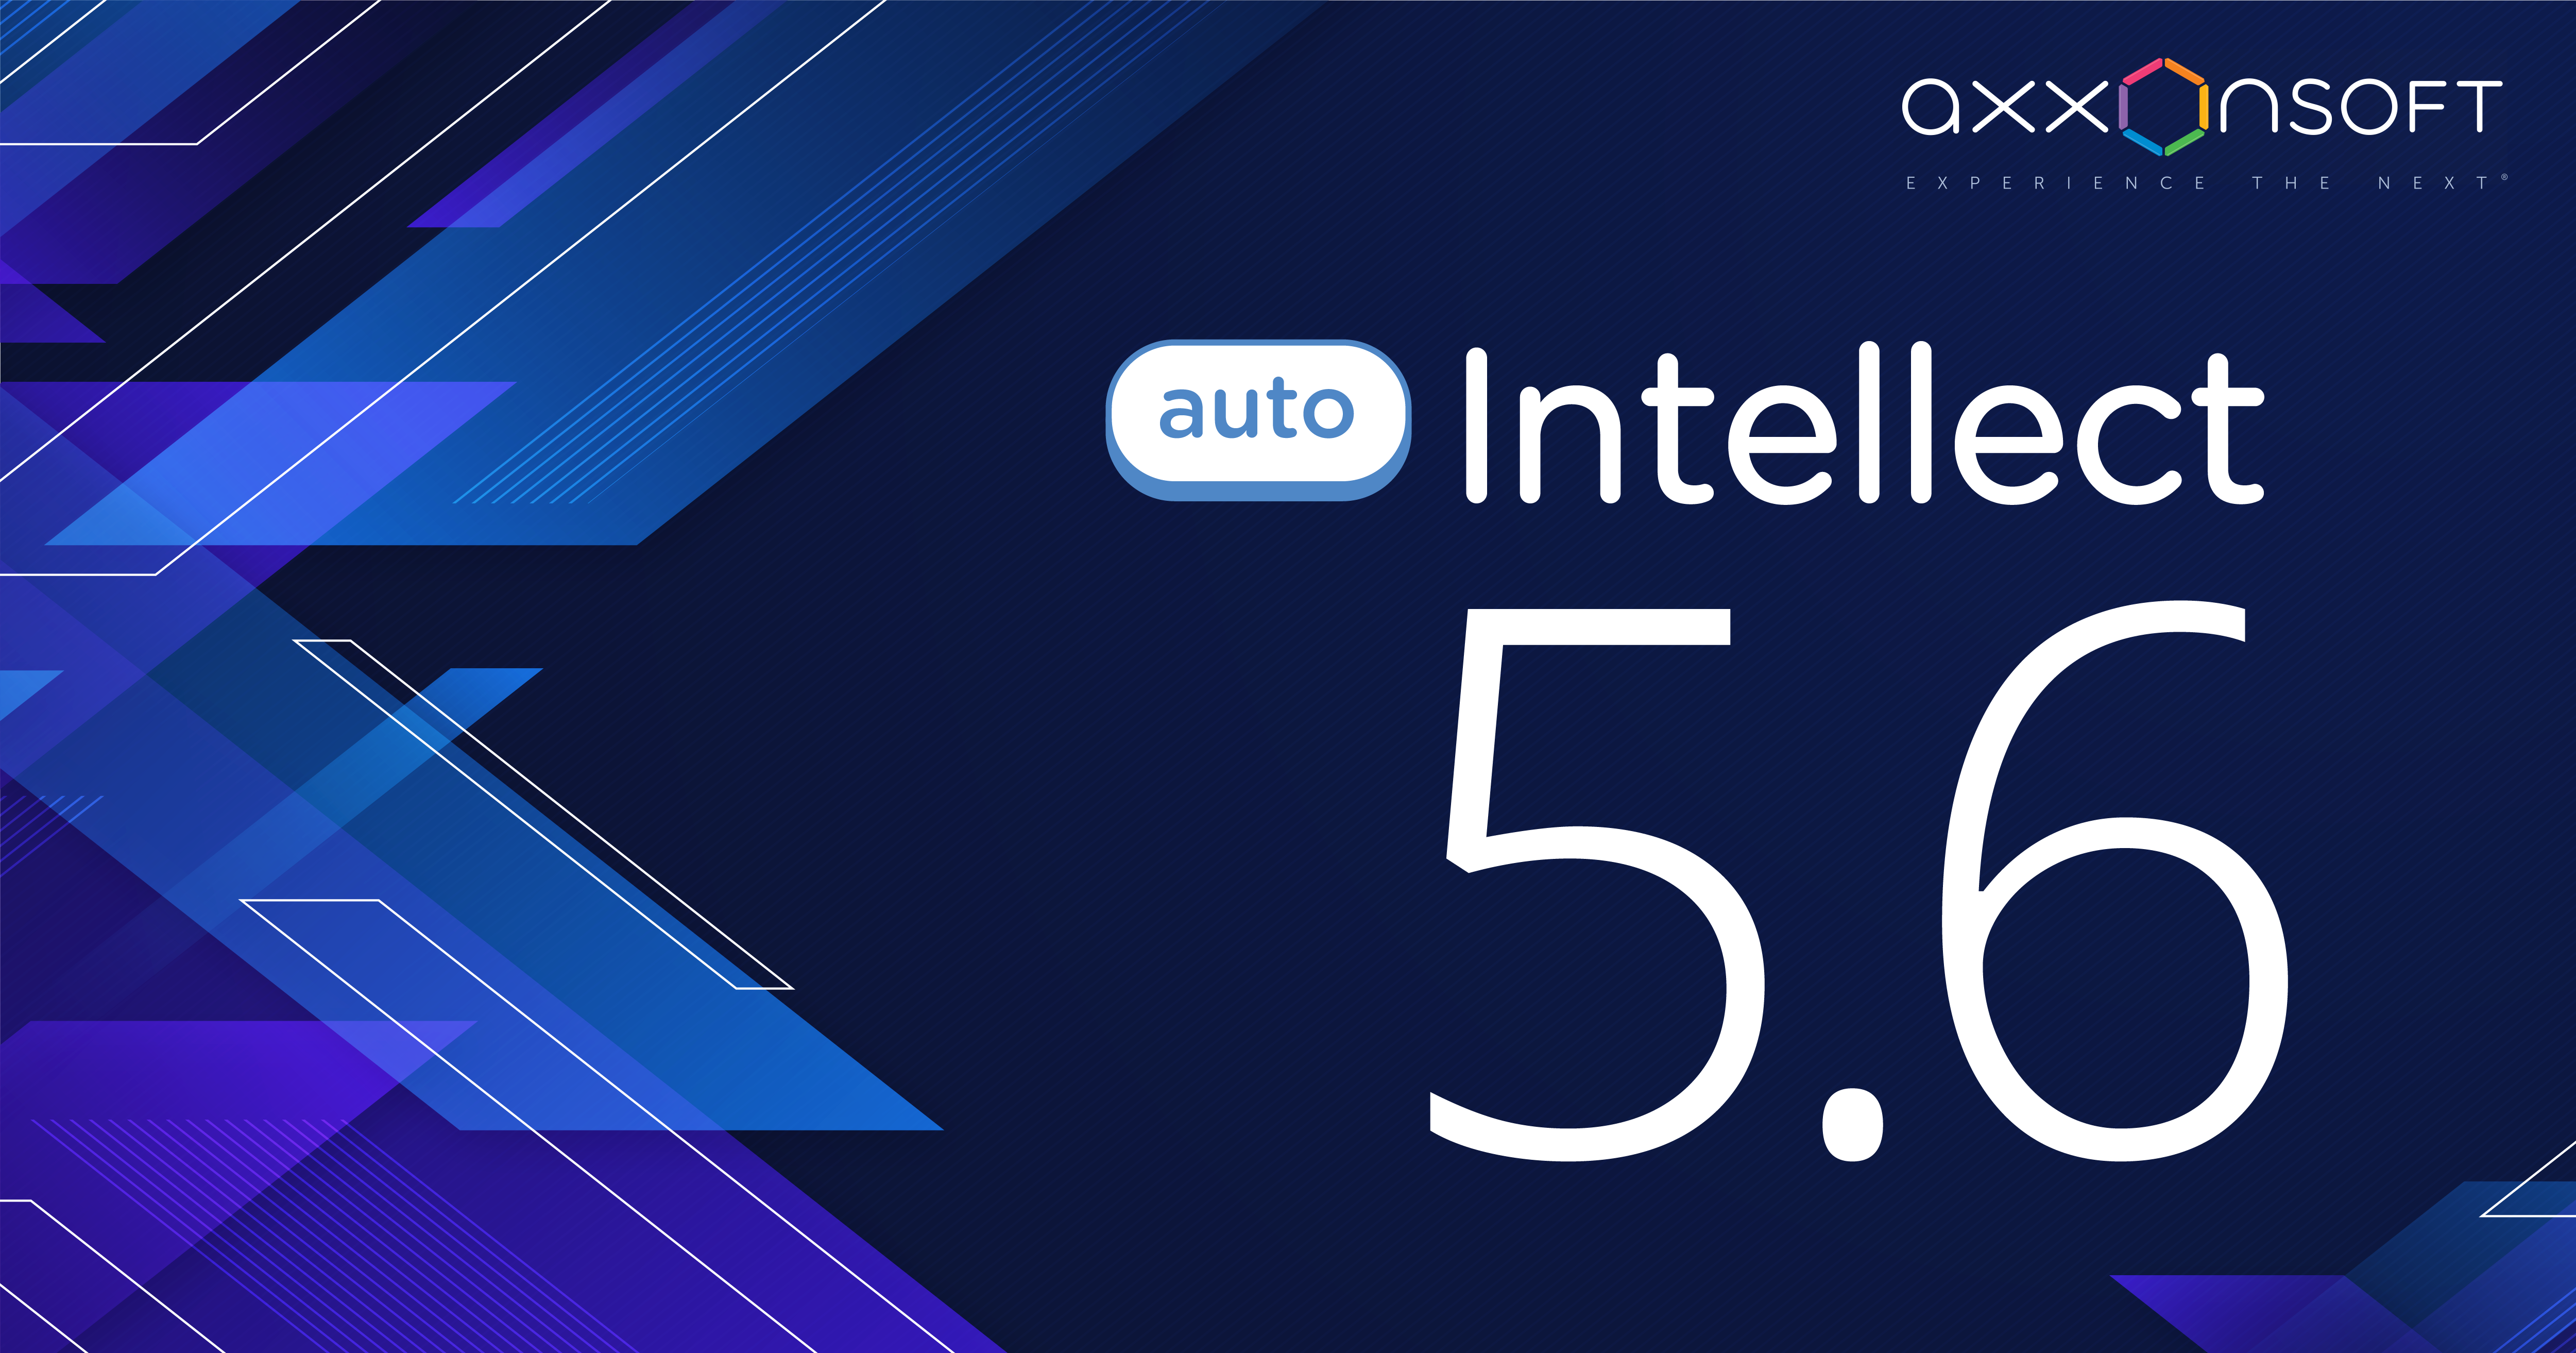 Auto Intellect 5.6 Released